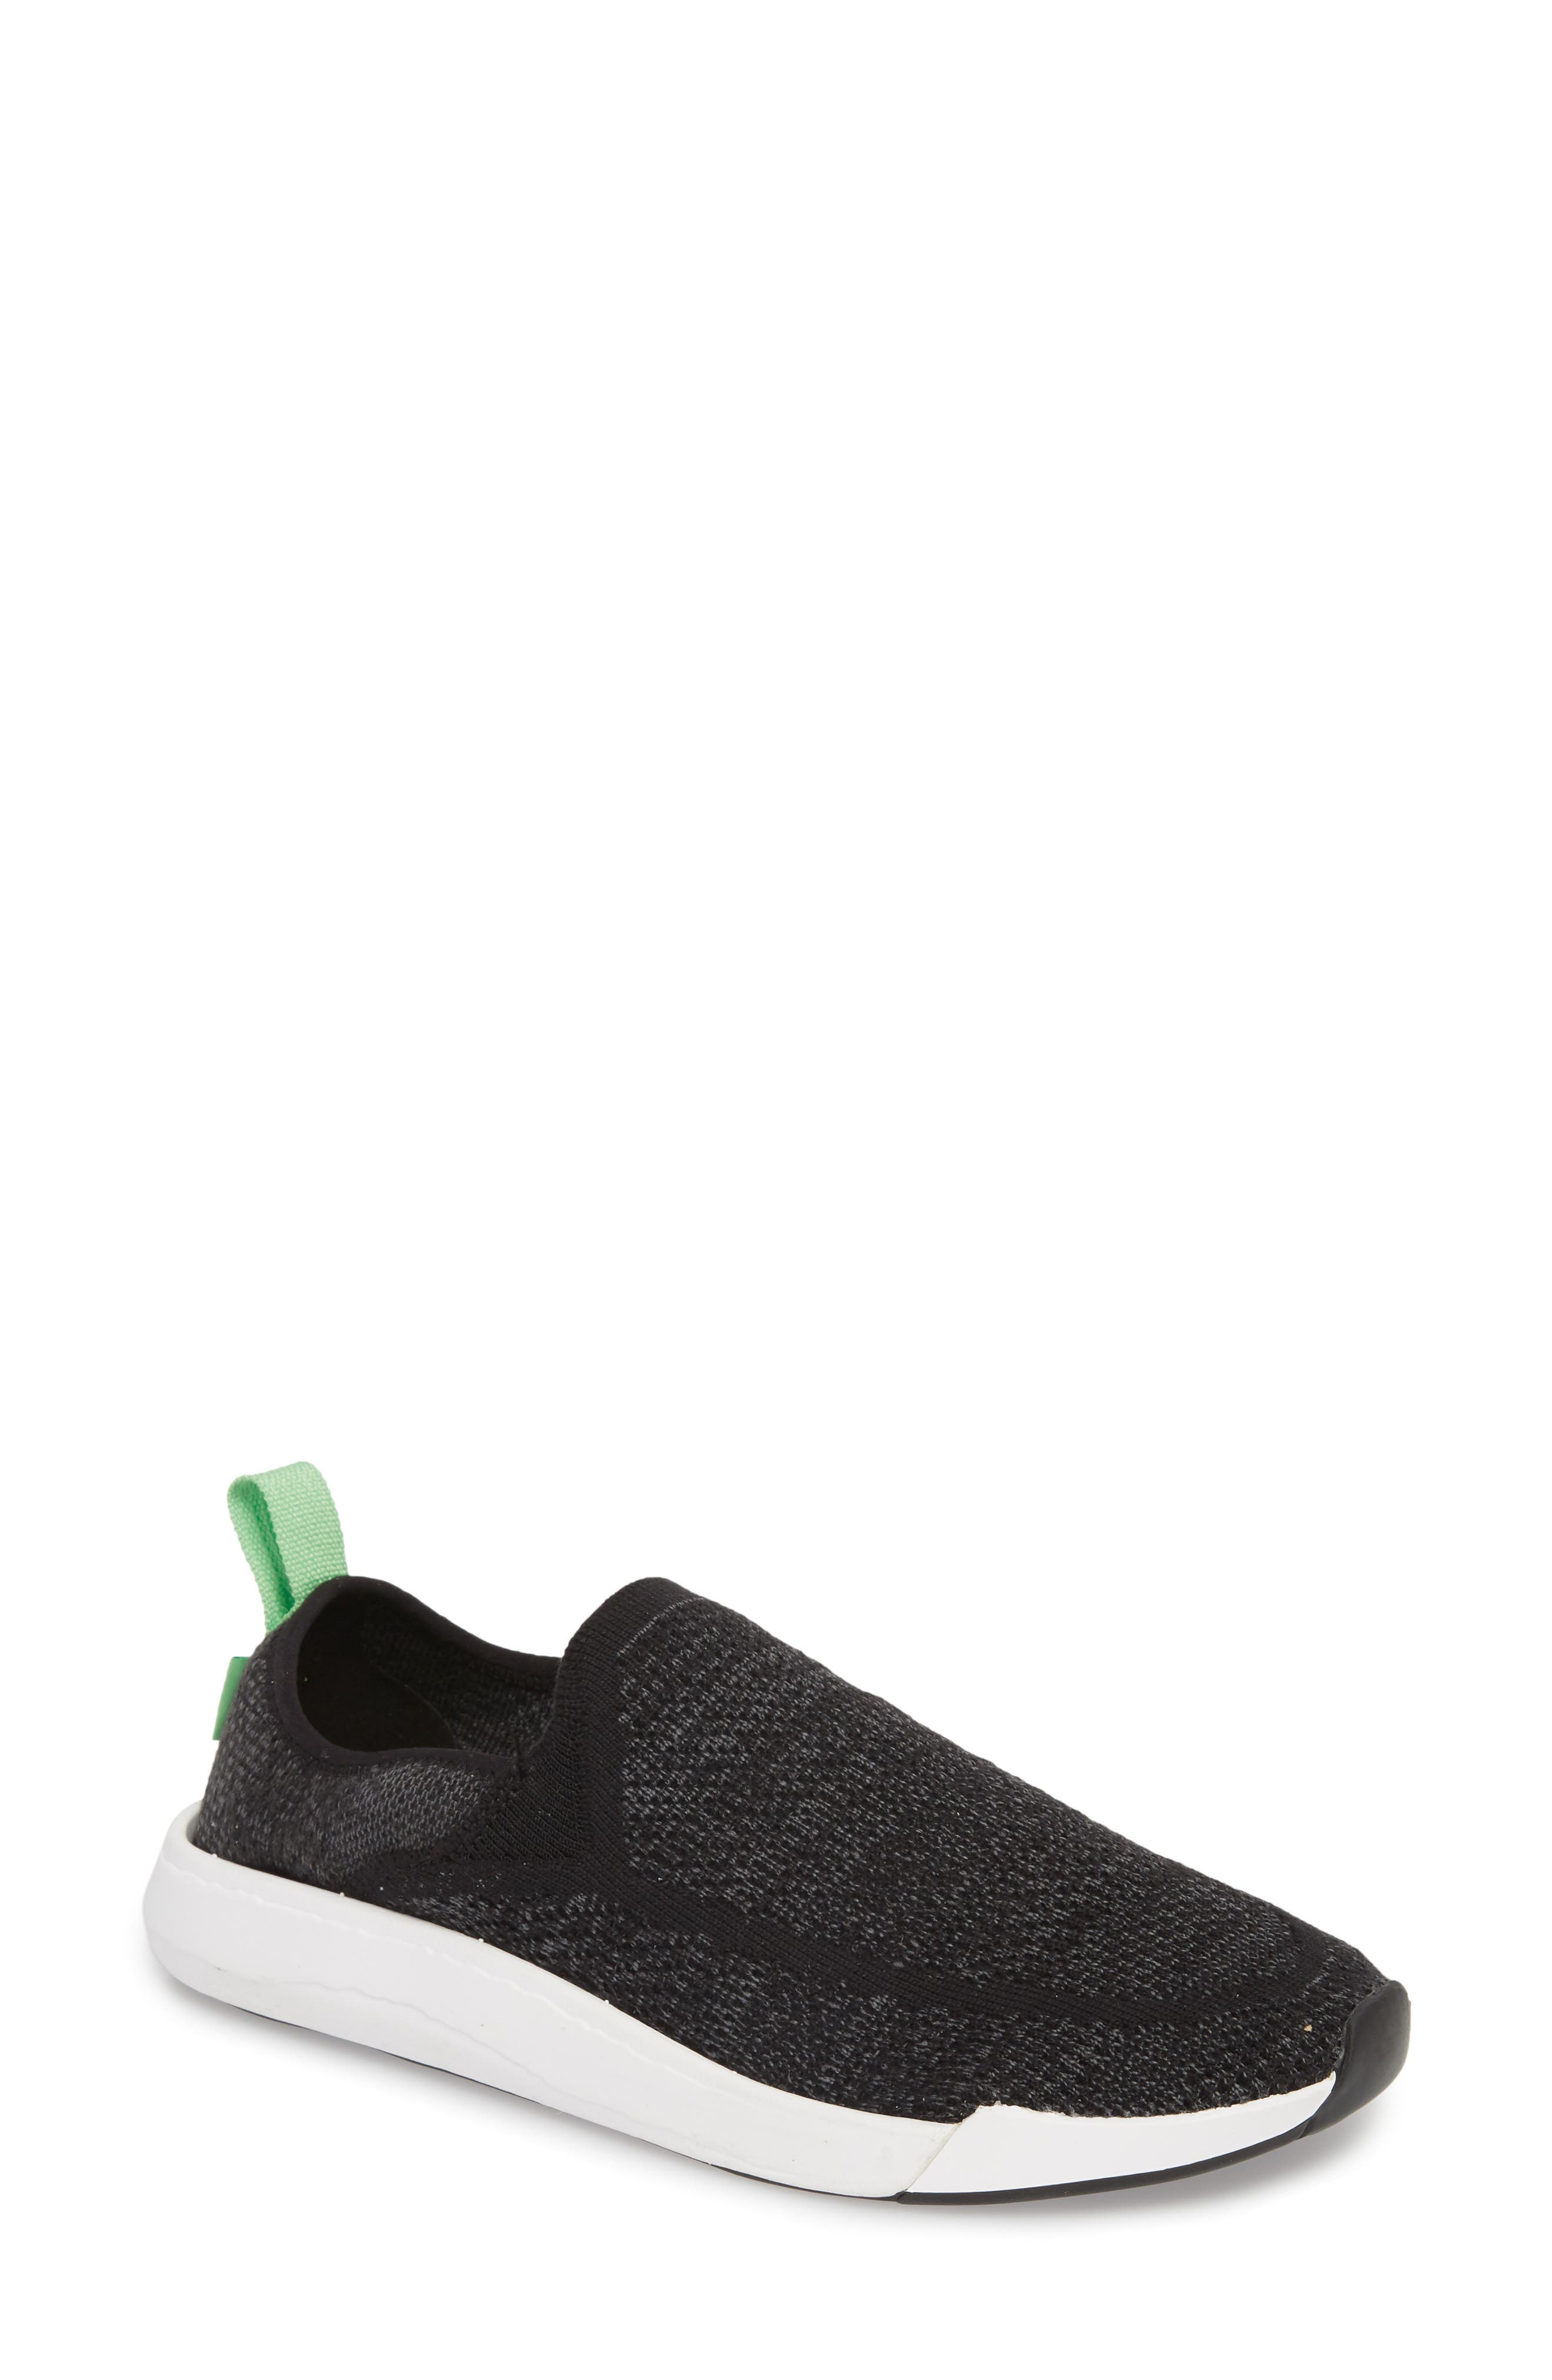 Chiba Quest Knit Slip-On Sneaker,                         Main,                         color, BLACK